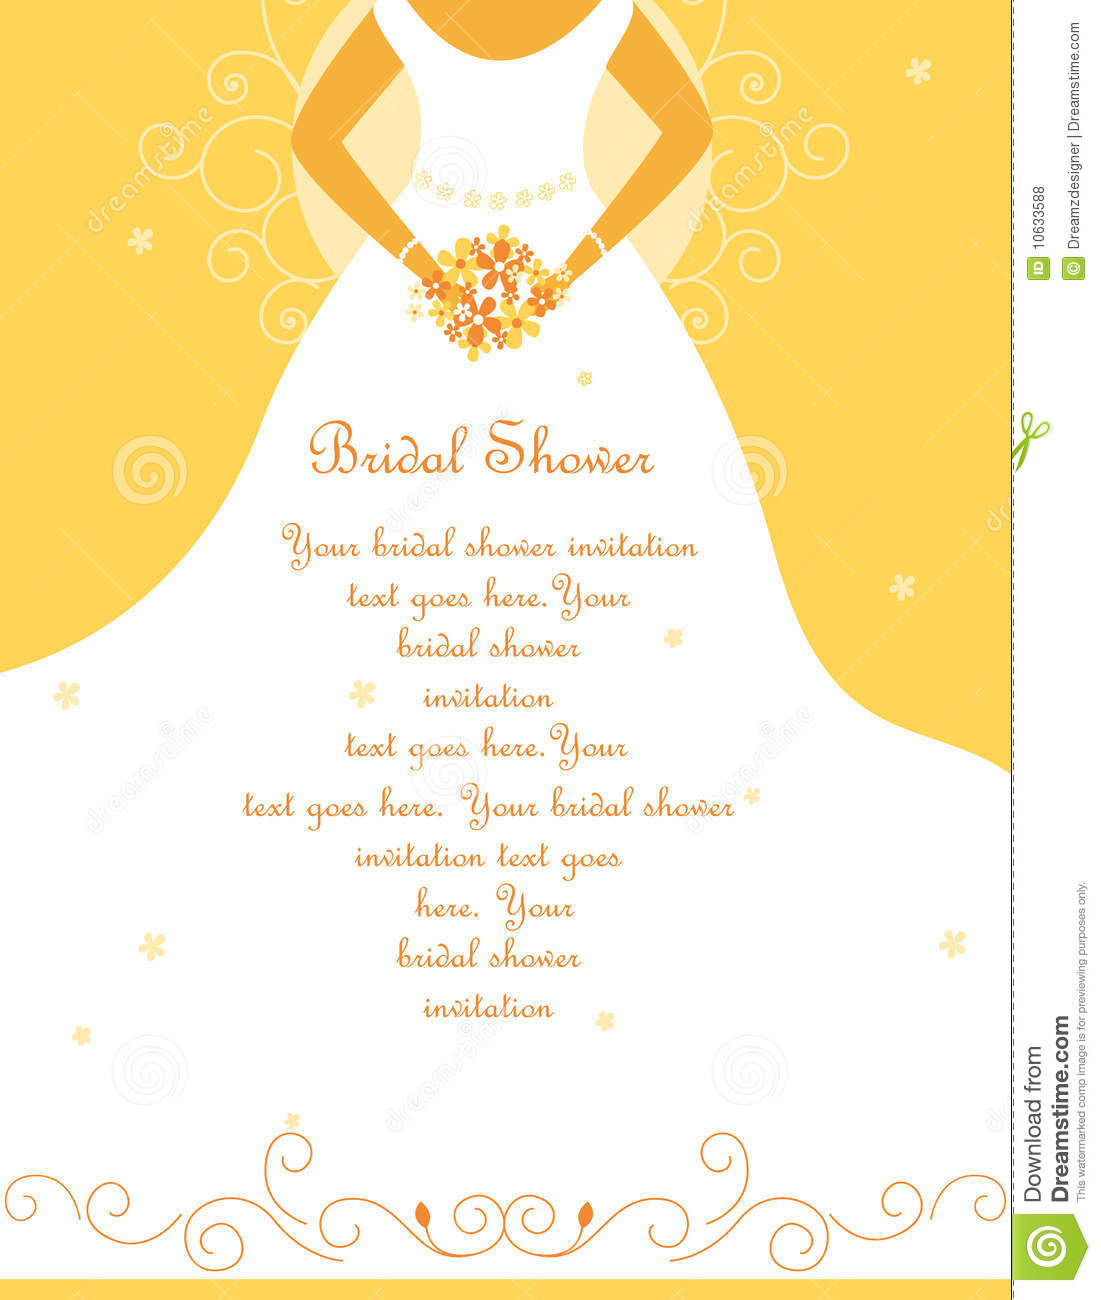 Bridal Shower Wedding Invitation Stock Vector